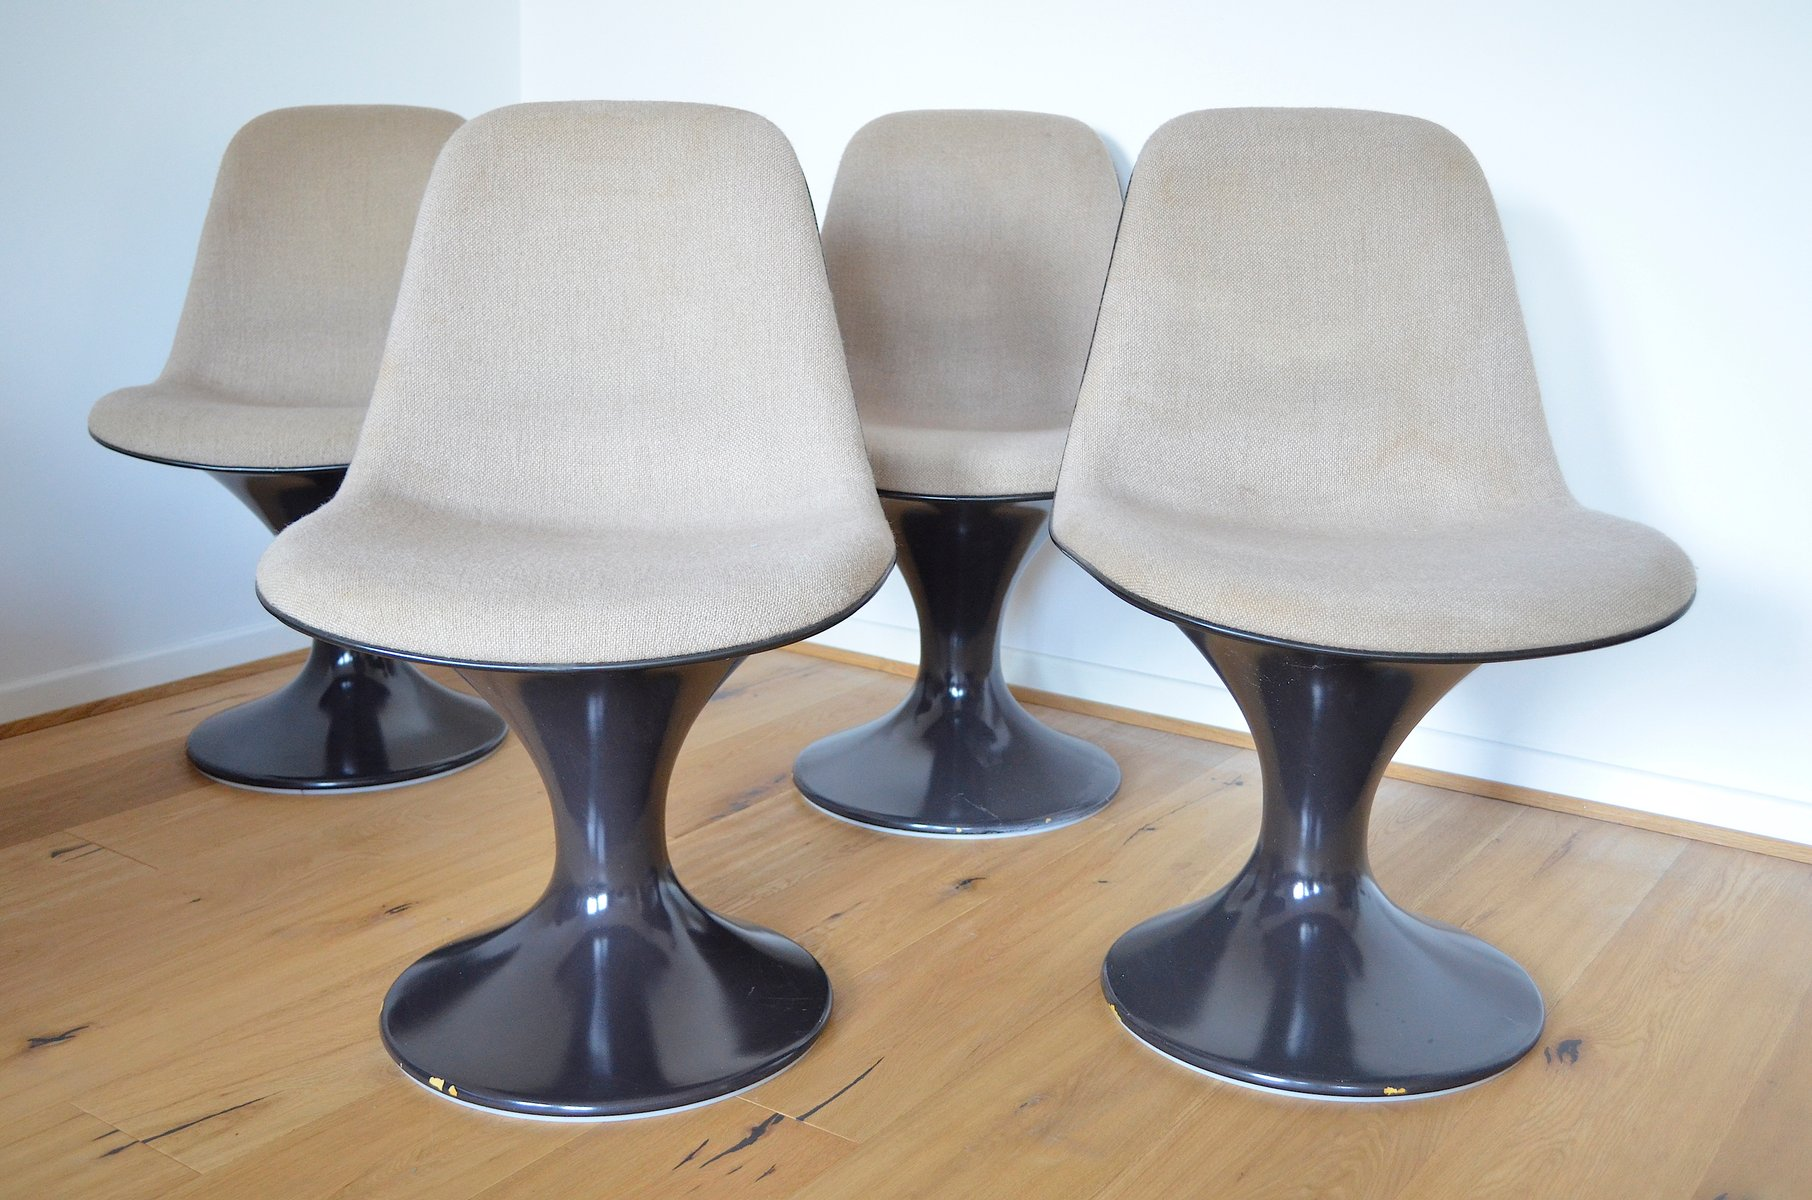 Orbit Chairs by Farner & Grunder for Herman Miller 1970s Set of